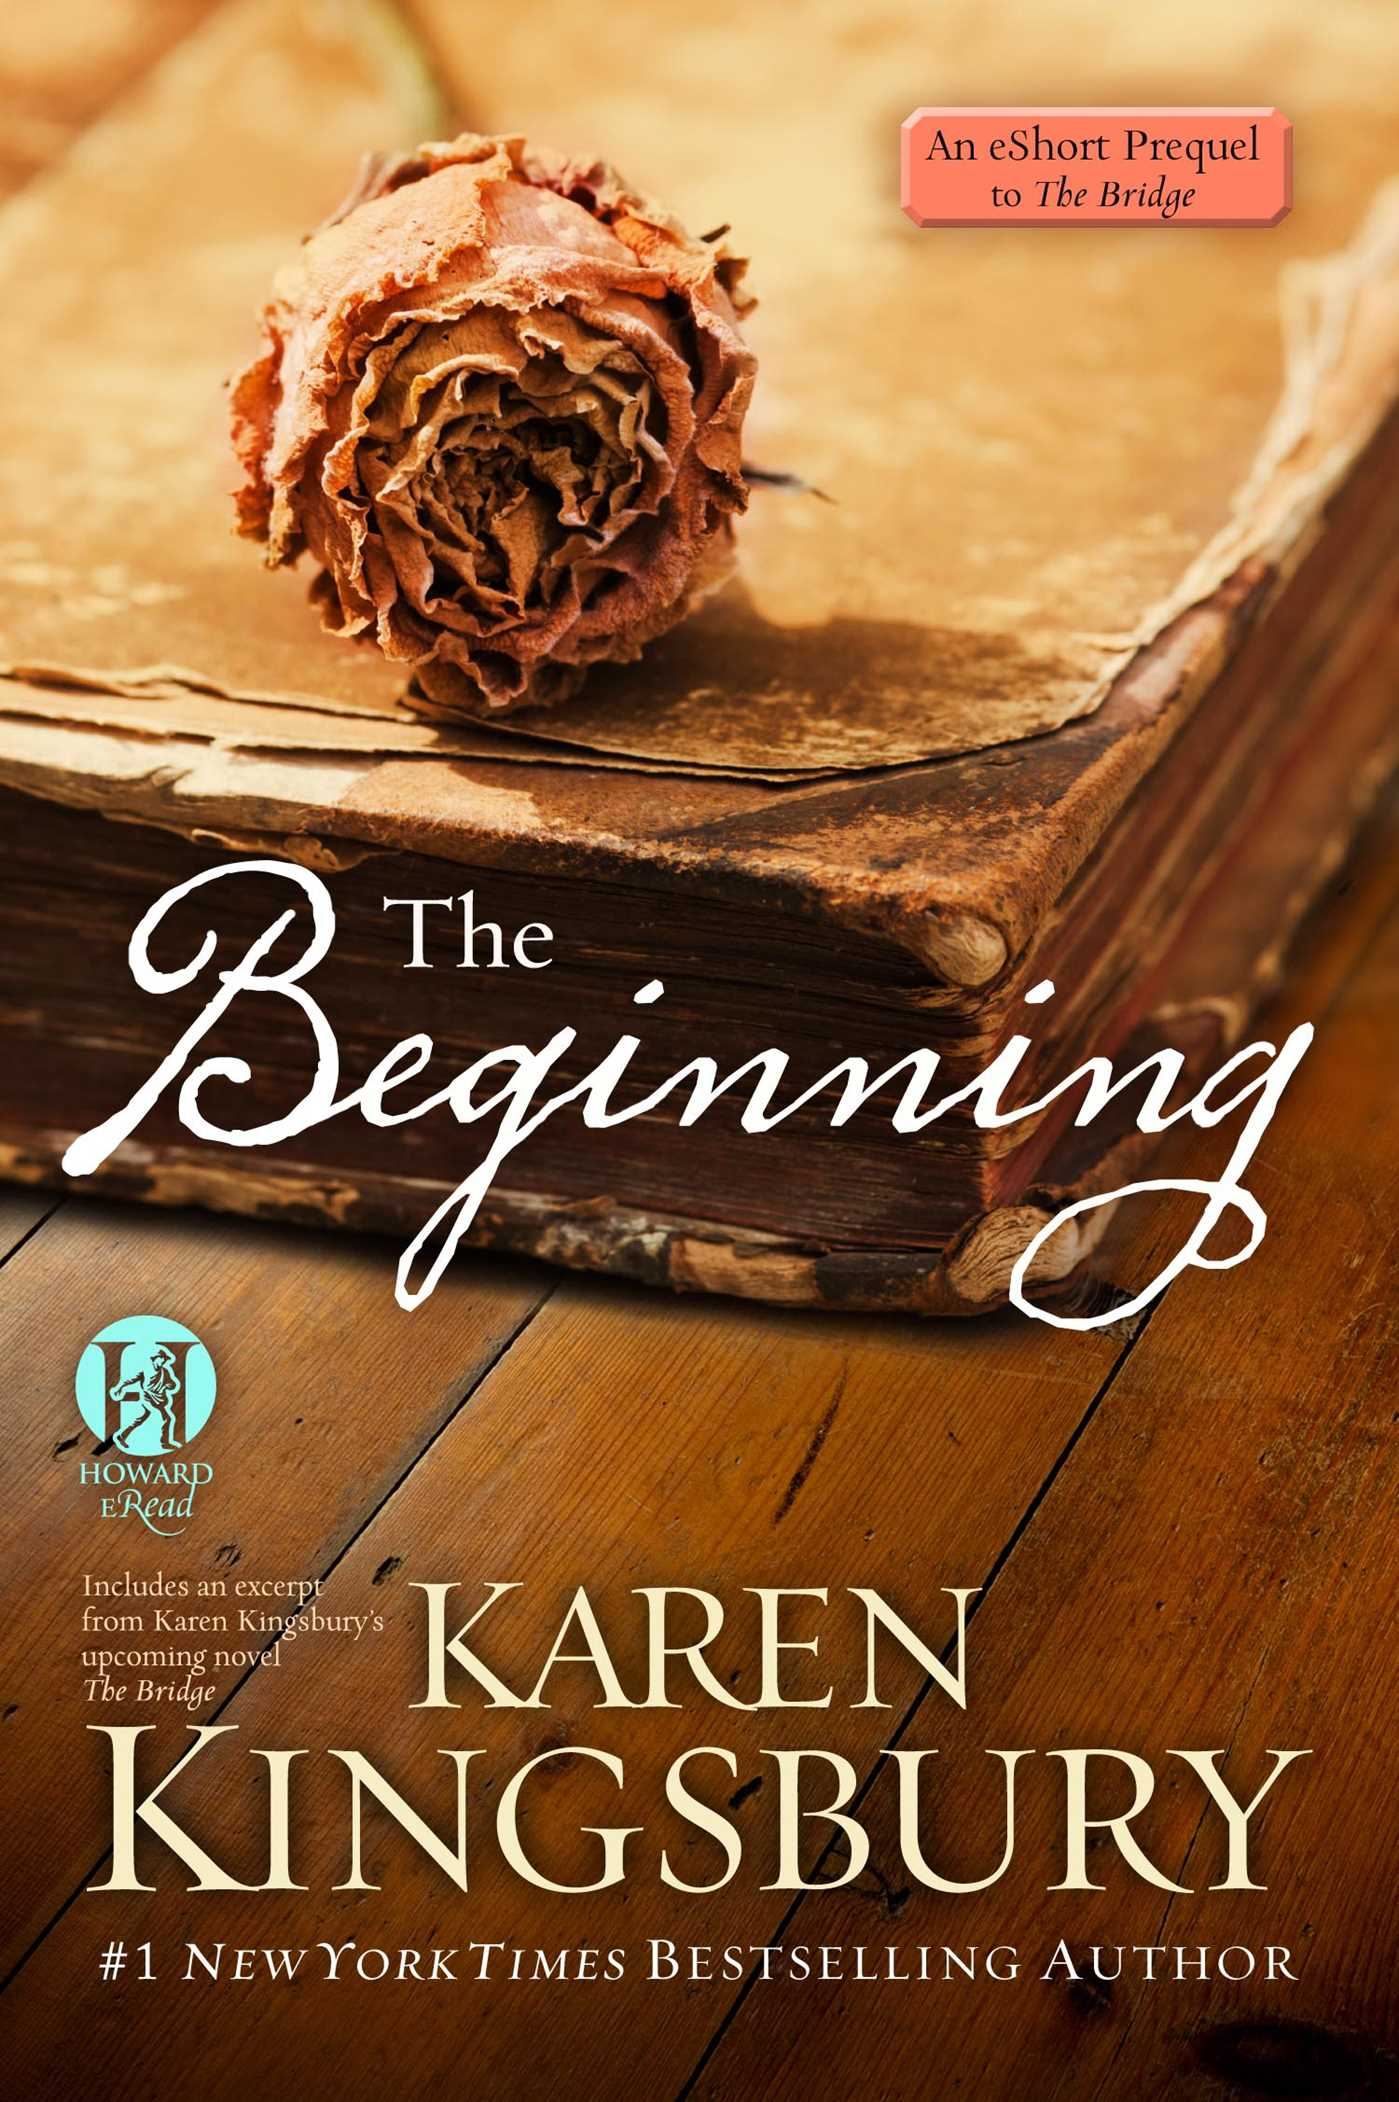 The-beginning-an-eshort-prequel-to-the-bridge-9781476713557_hr